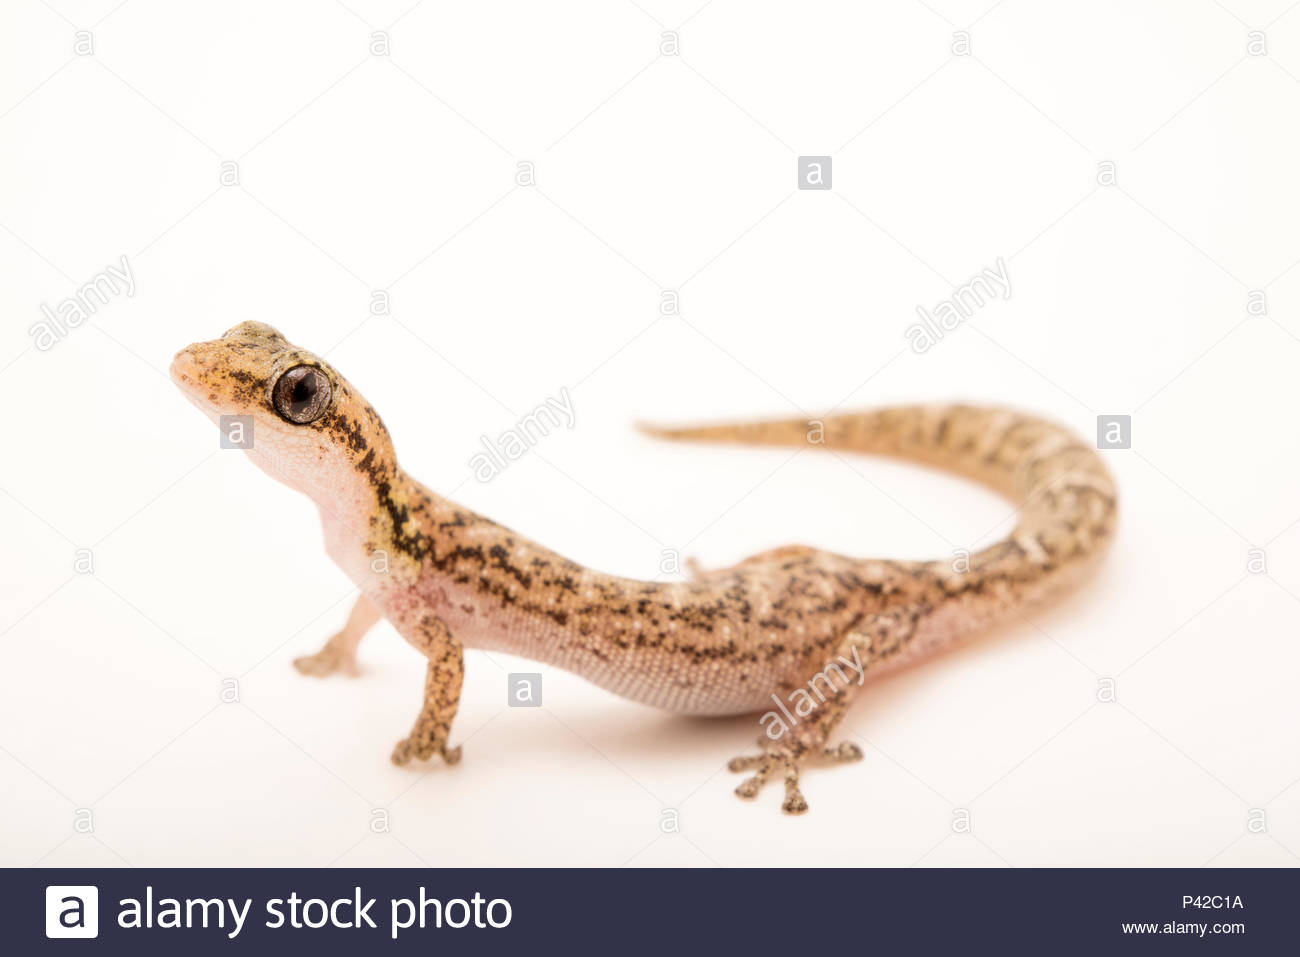 Malagasy salamander gecko, Matoatoa brevipes, from a private collection. - Stock Image